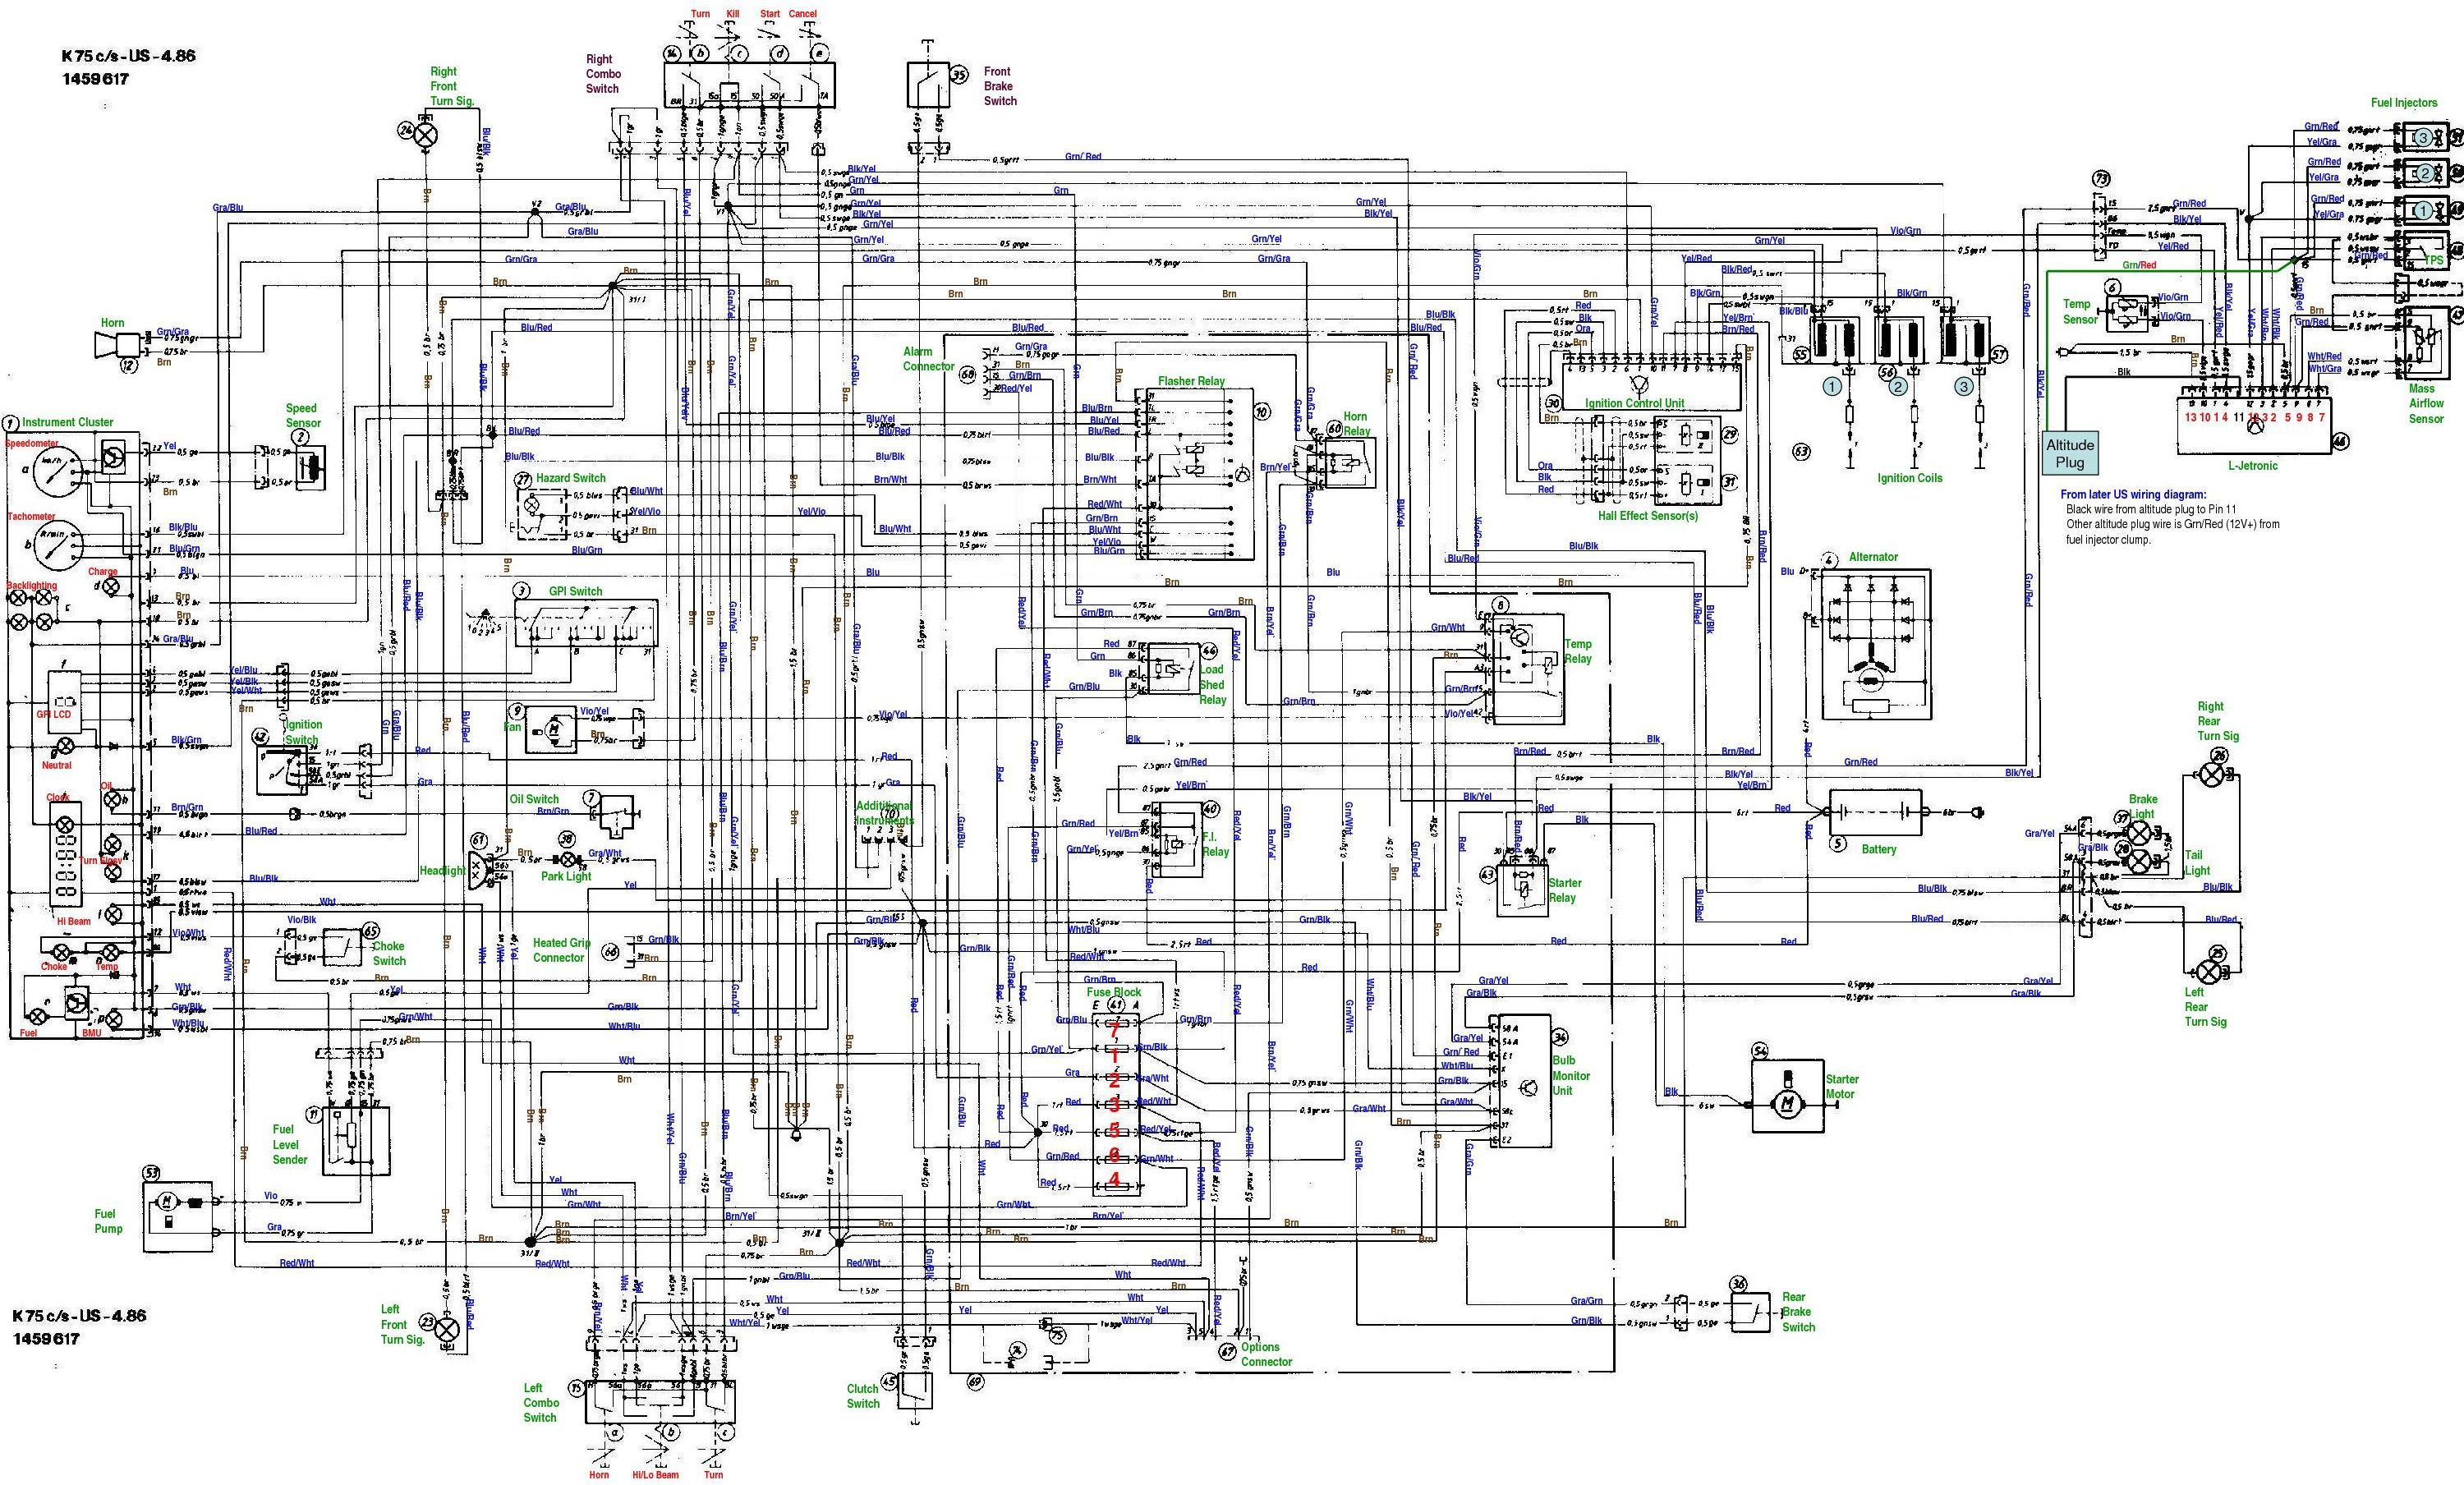 Miraculous Wire Diagram Bmw R1100R Wiring Diagram Schematic Wiring Cloud Intelaidewilluminateatxorg